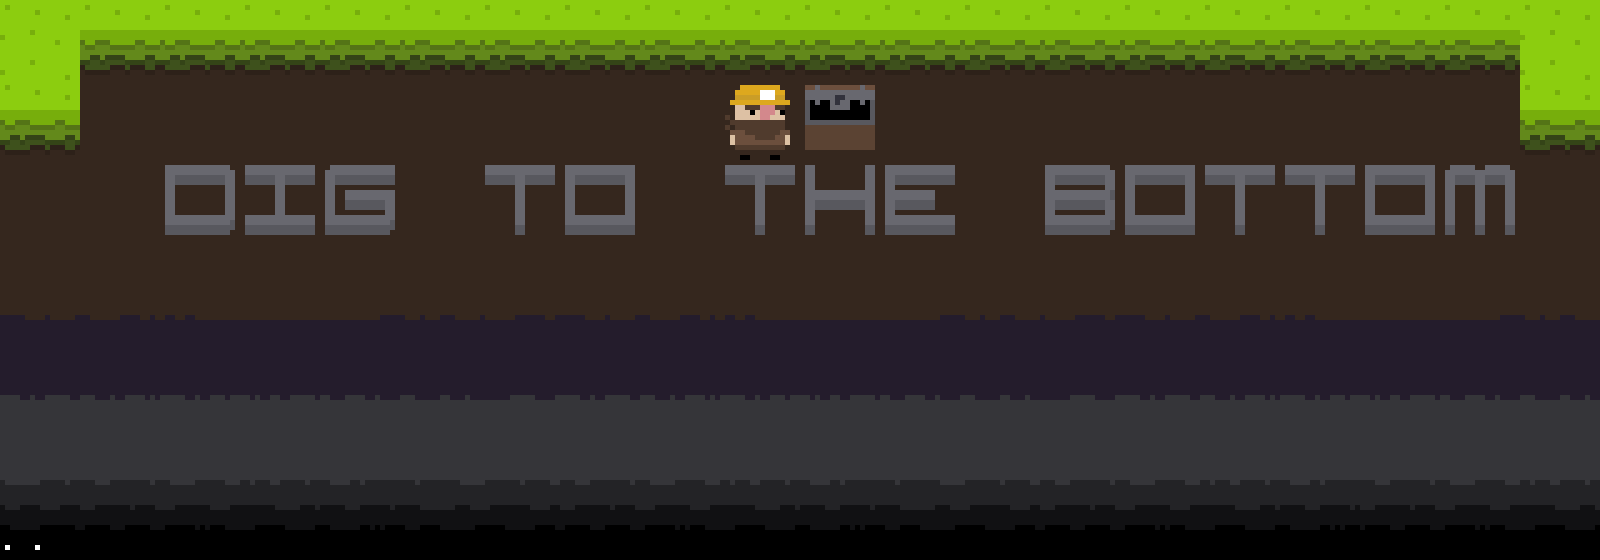 Dig to the Bottom (Prototype)